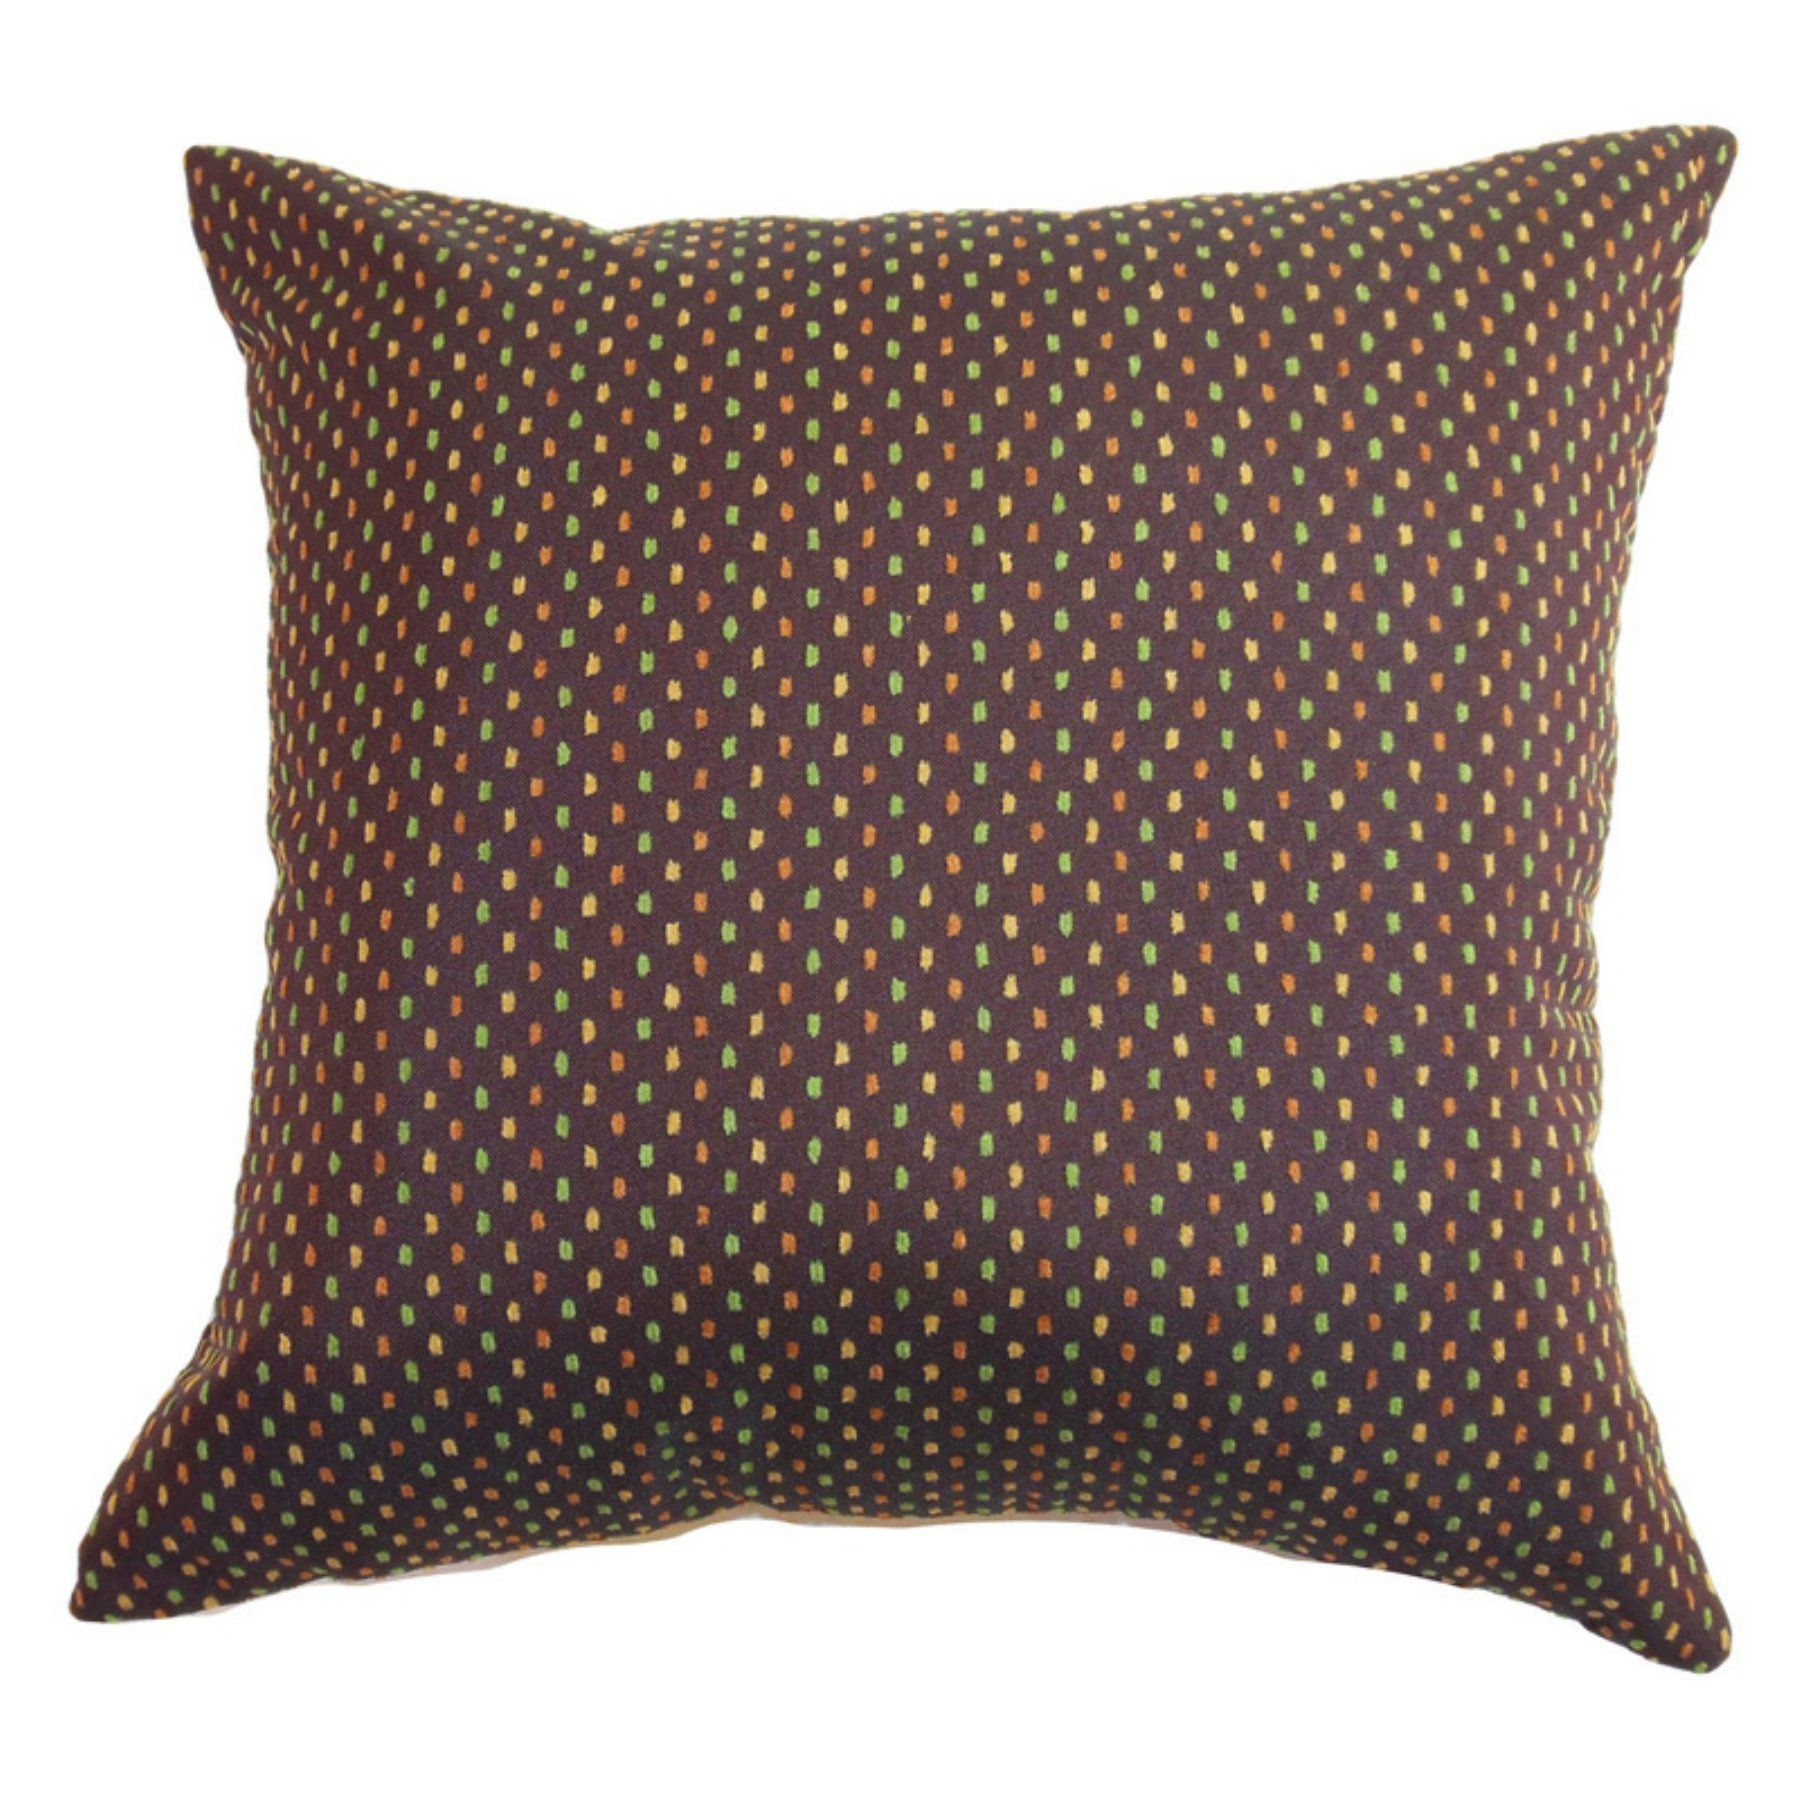 The Pillow Collection Landon Dots Pillow - Brown - P18-MVT-1002-BROWN-C50P50